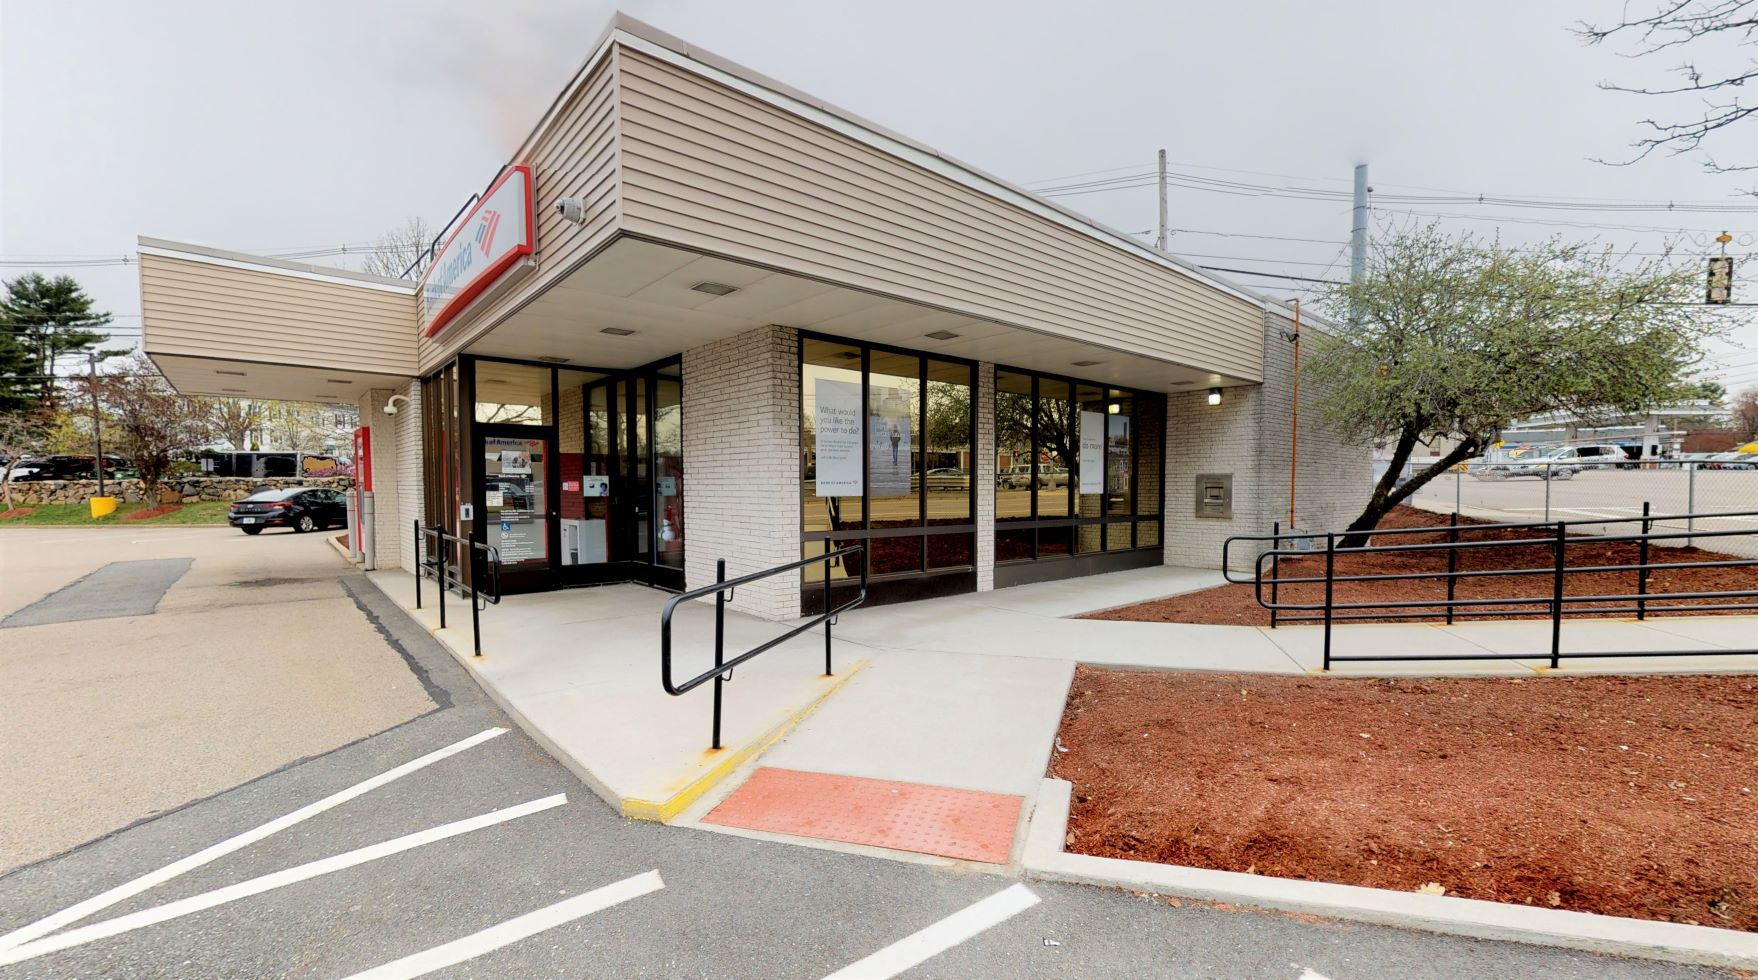 Bank of America financial center with drive-thru ATM | 1270 Worcester Rd, Framingham, MA 01702